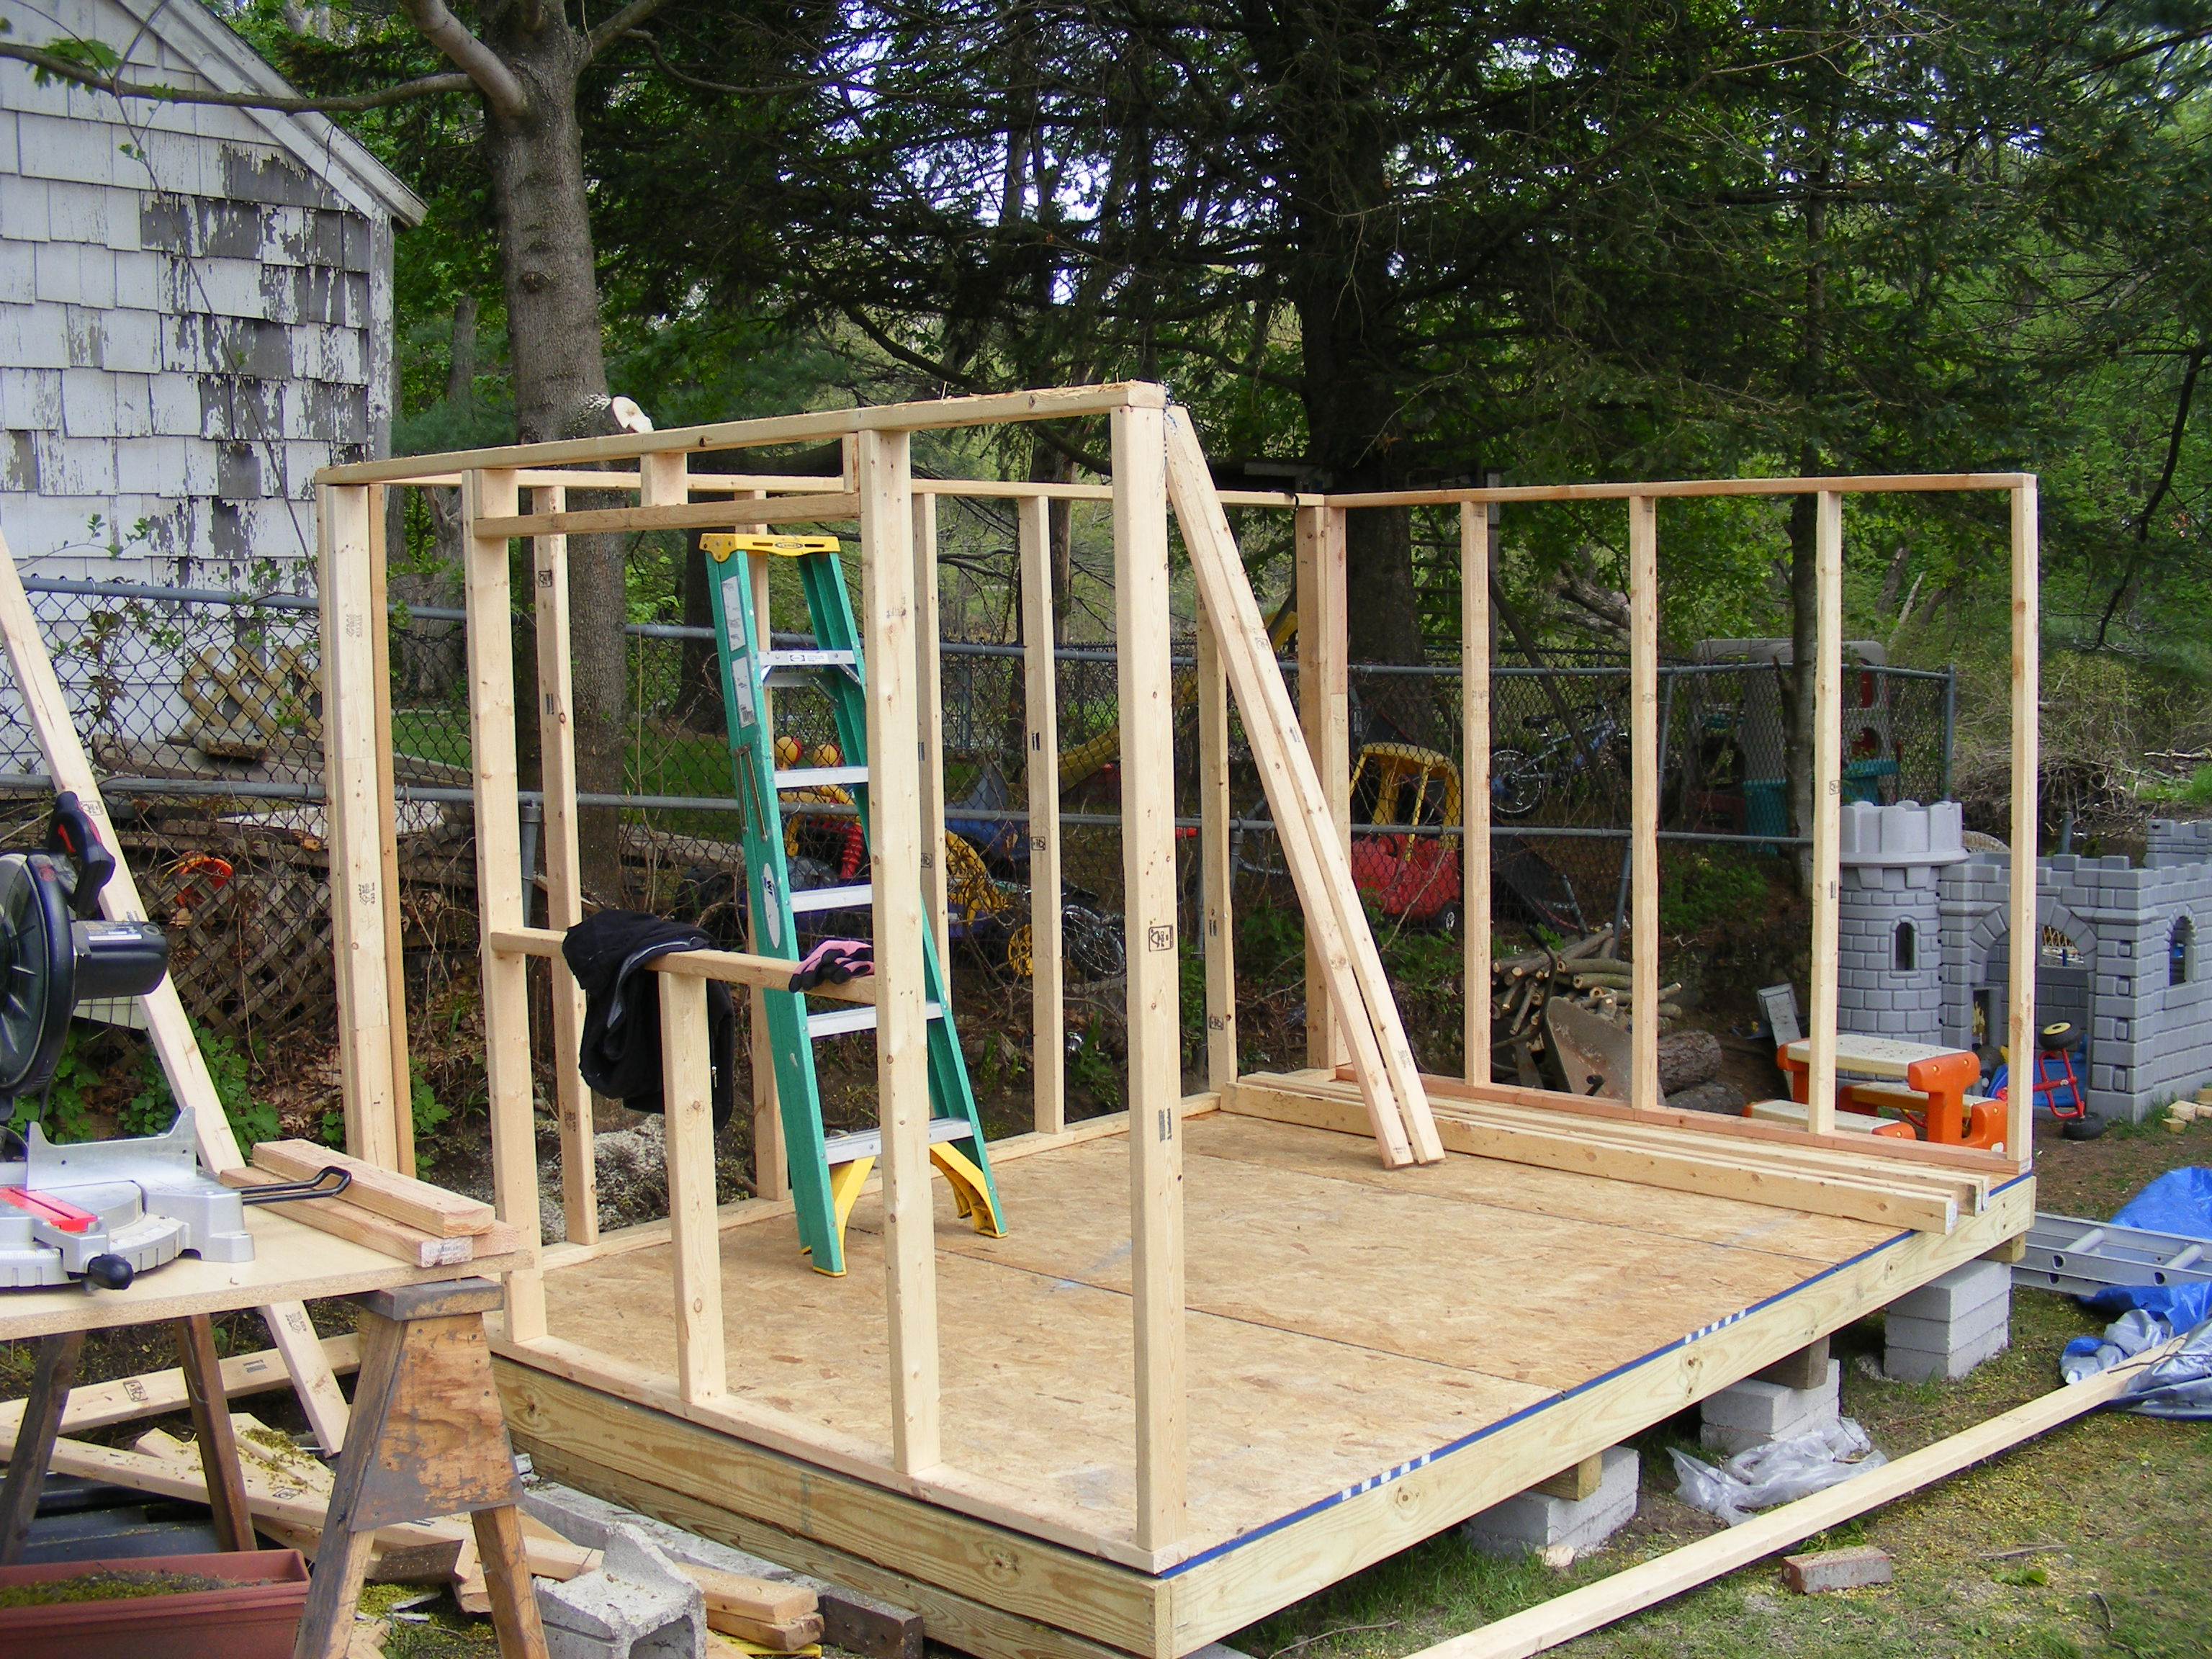 Build Shed : Free Back Yard Shed Plans And Blue Prints Are Available ...